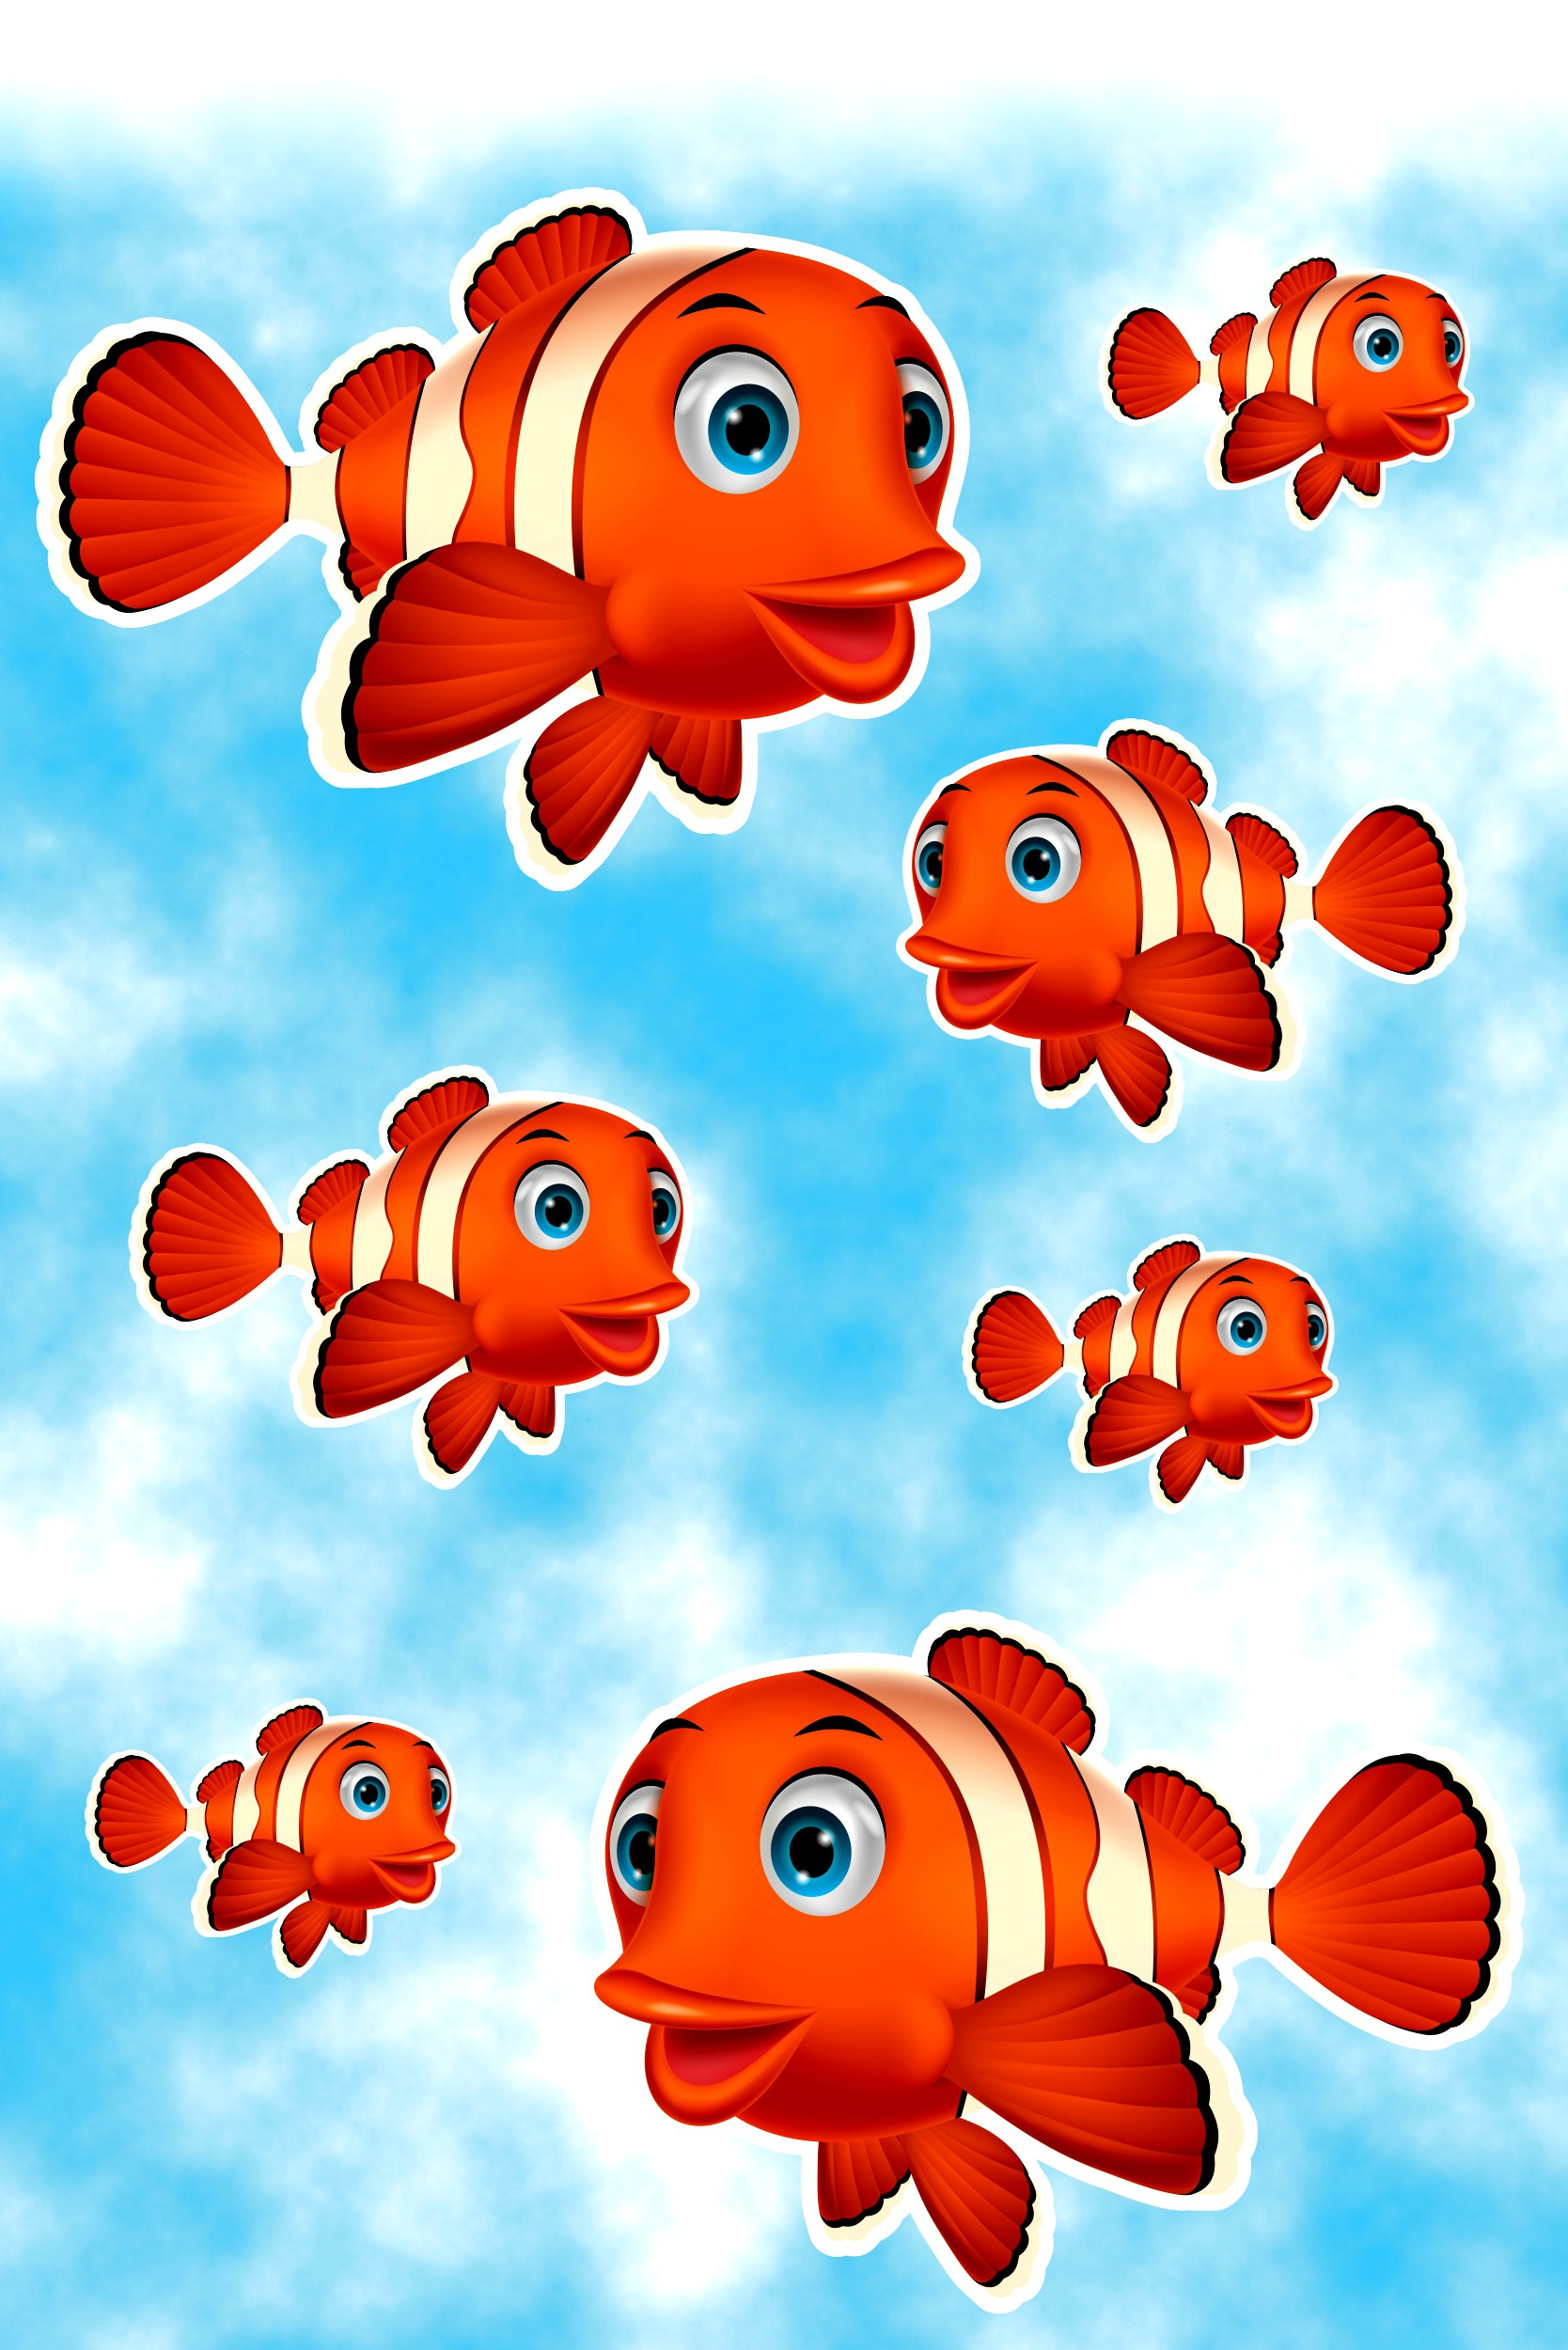 Autocollant clown-poissons 300 x 200 mm